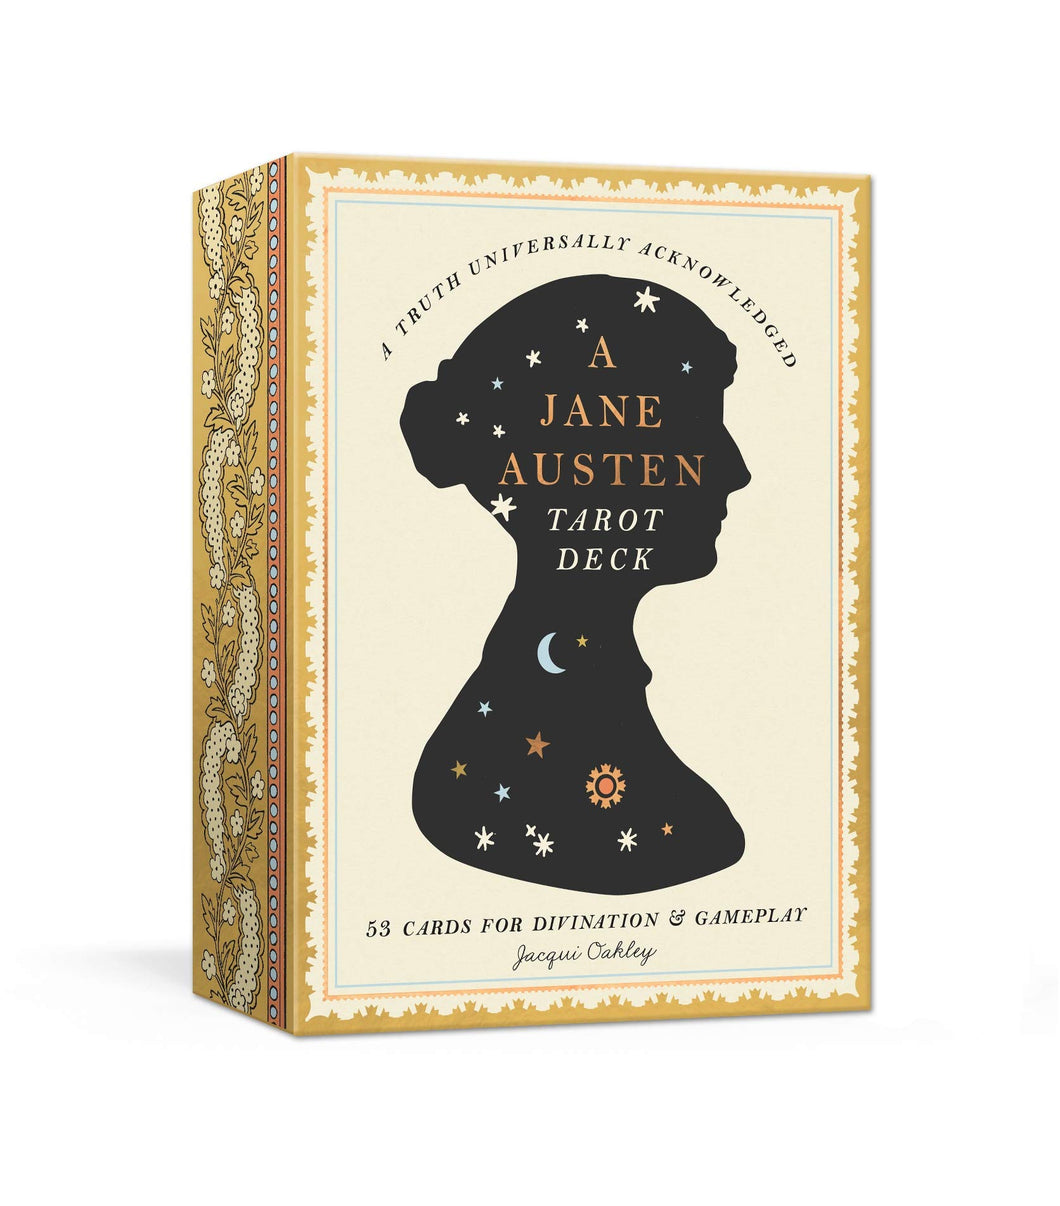 A Jane Austen Tarot Deck: 53 Cards for Divination and Gameplay by Jacqui Oakley